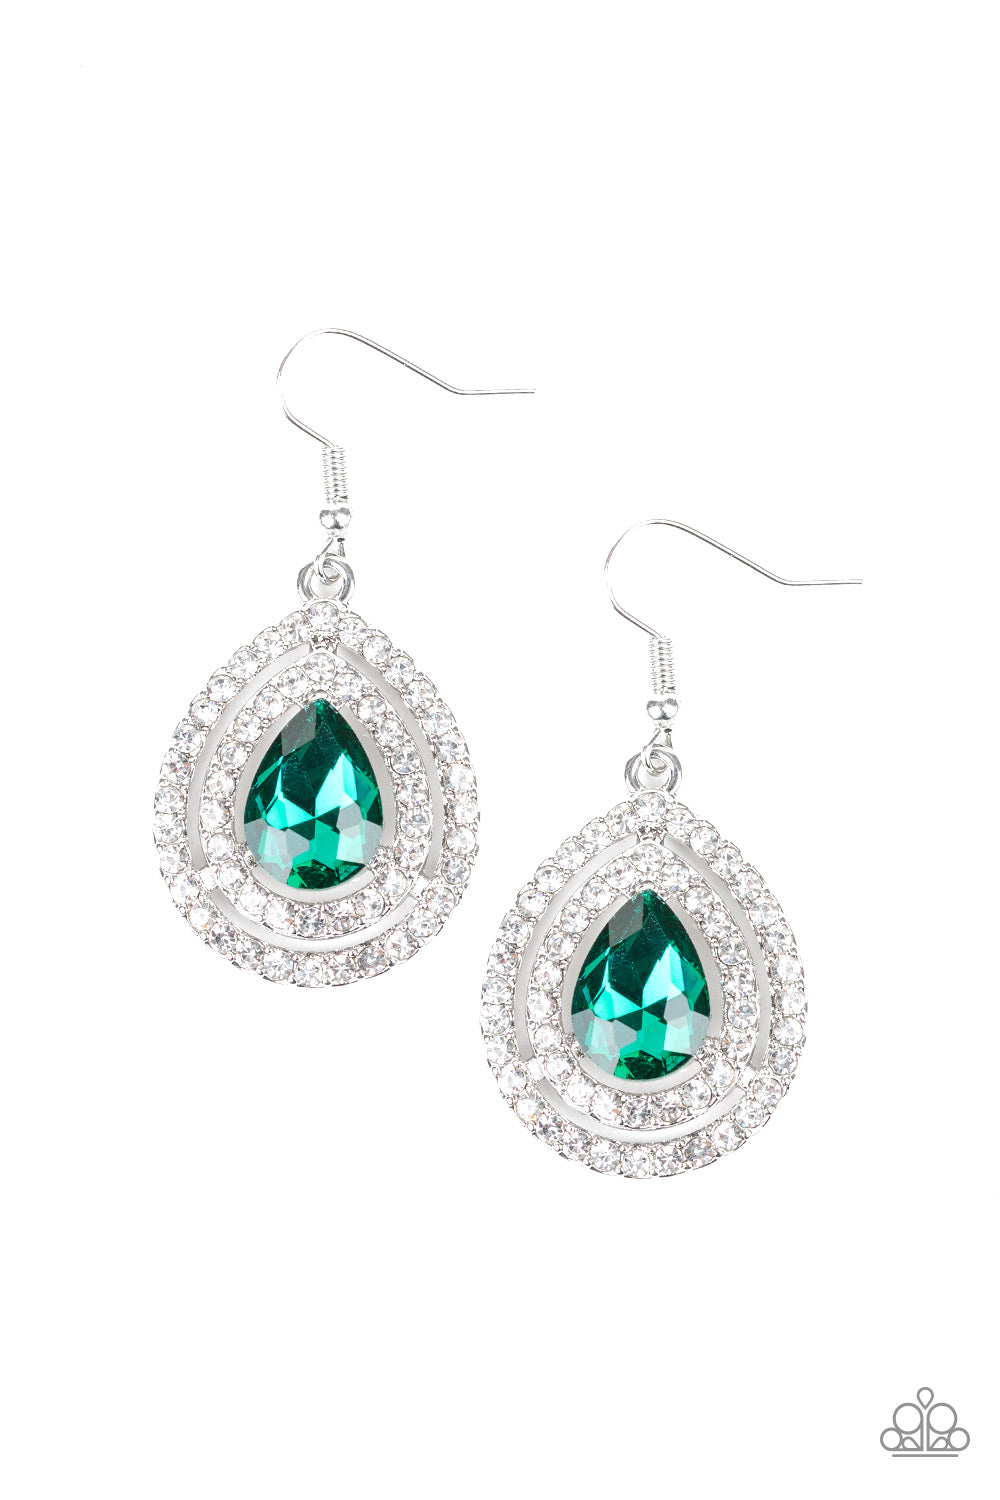 Paparazzi Accessories - Millionaire Debonair - Green Earrings - JMJ Jewelry Collection